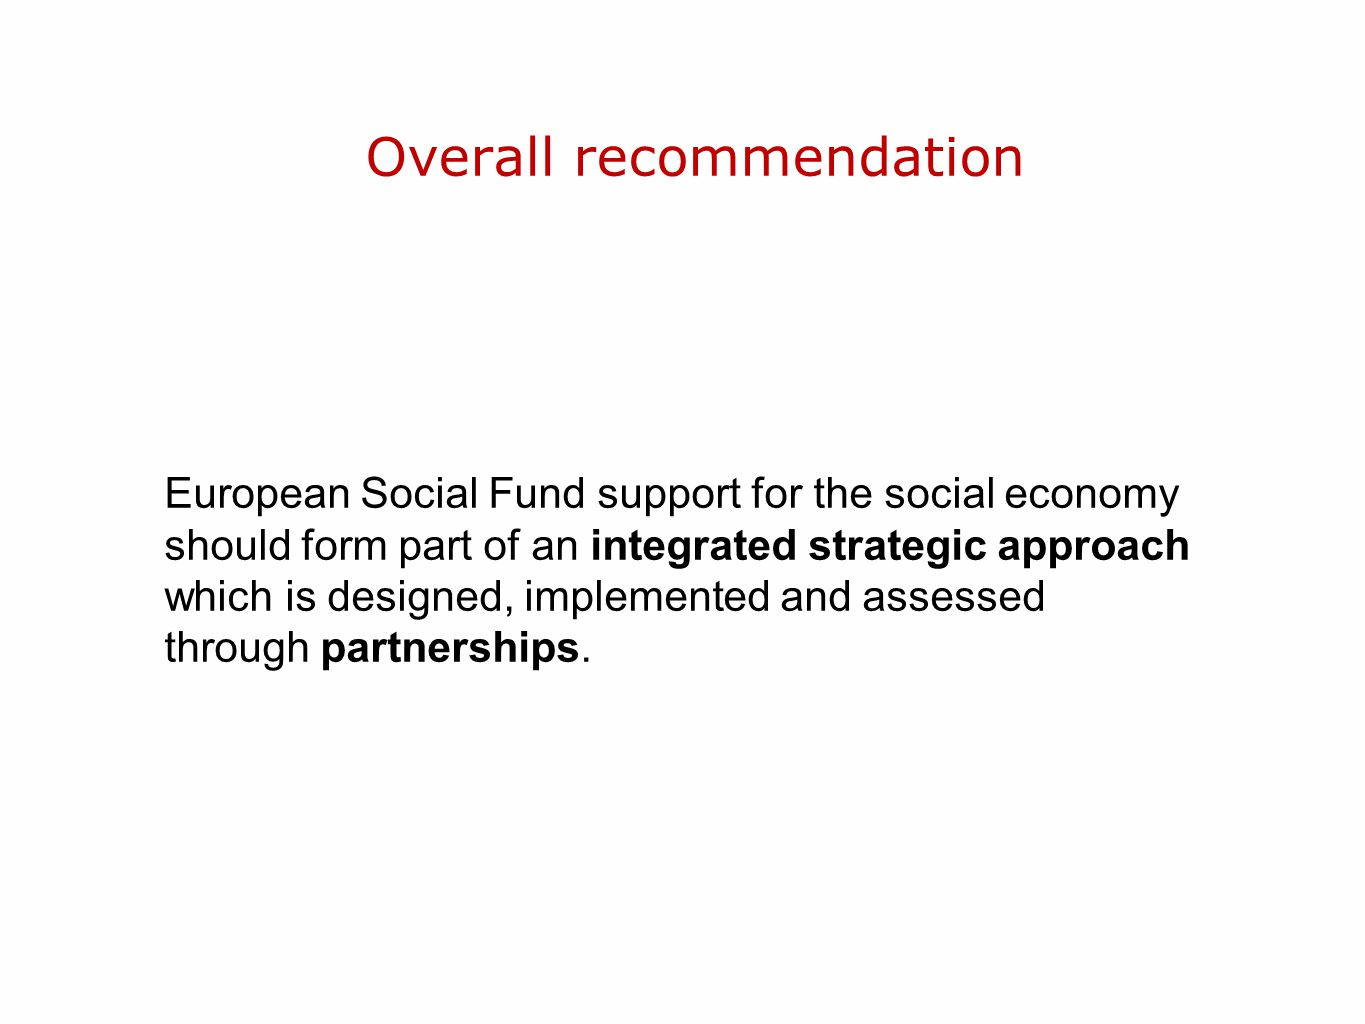 Overall recommendation European Social Fund support for the social economy should form part of an integrated strategic approach which is designed, implemented and assessed through partnerships.